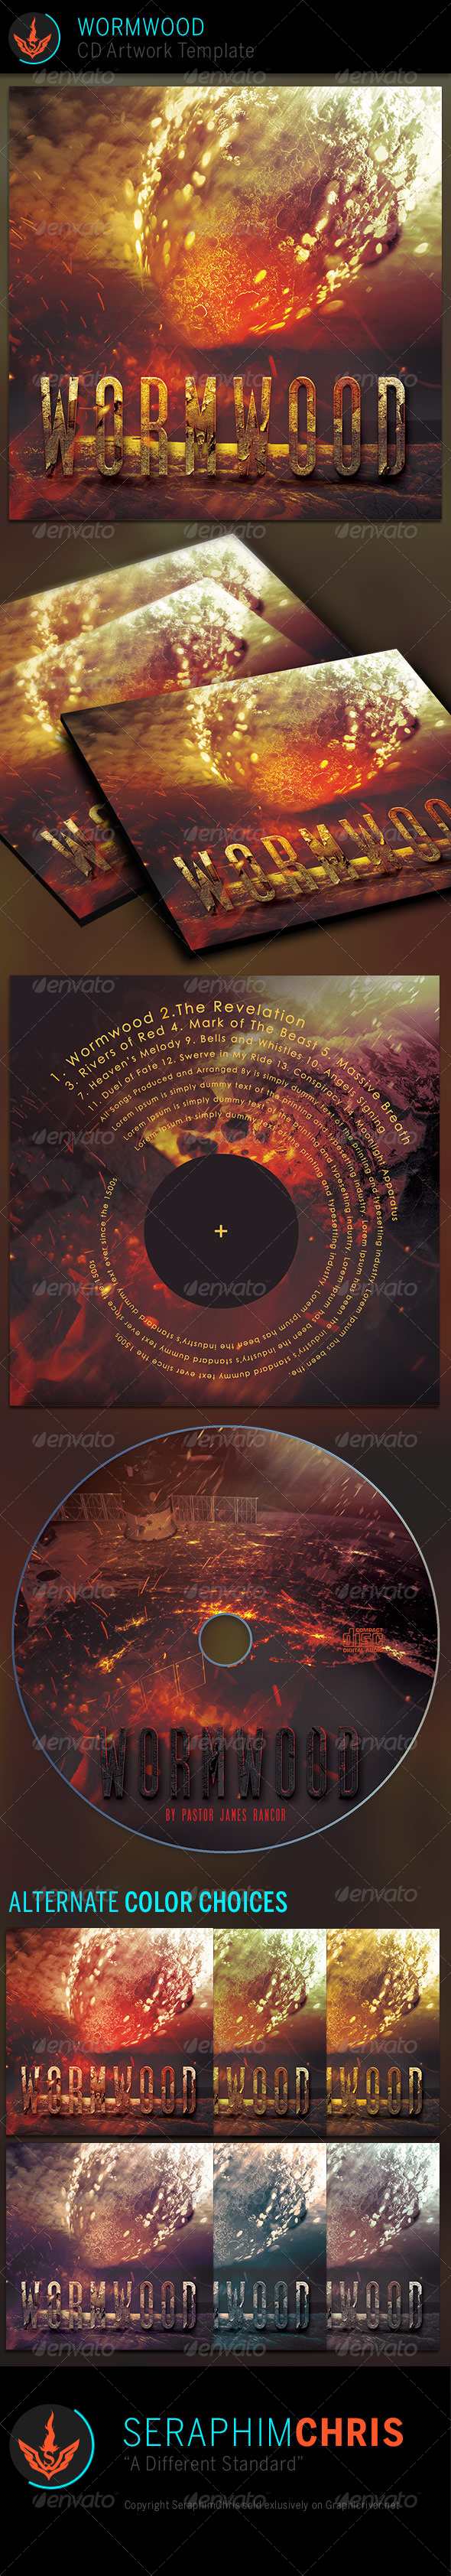 GraphicRiver Wormwood CD Artwork Template 7502144